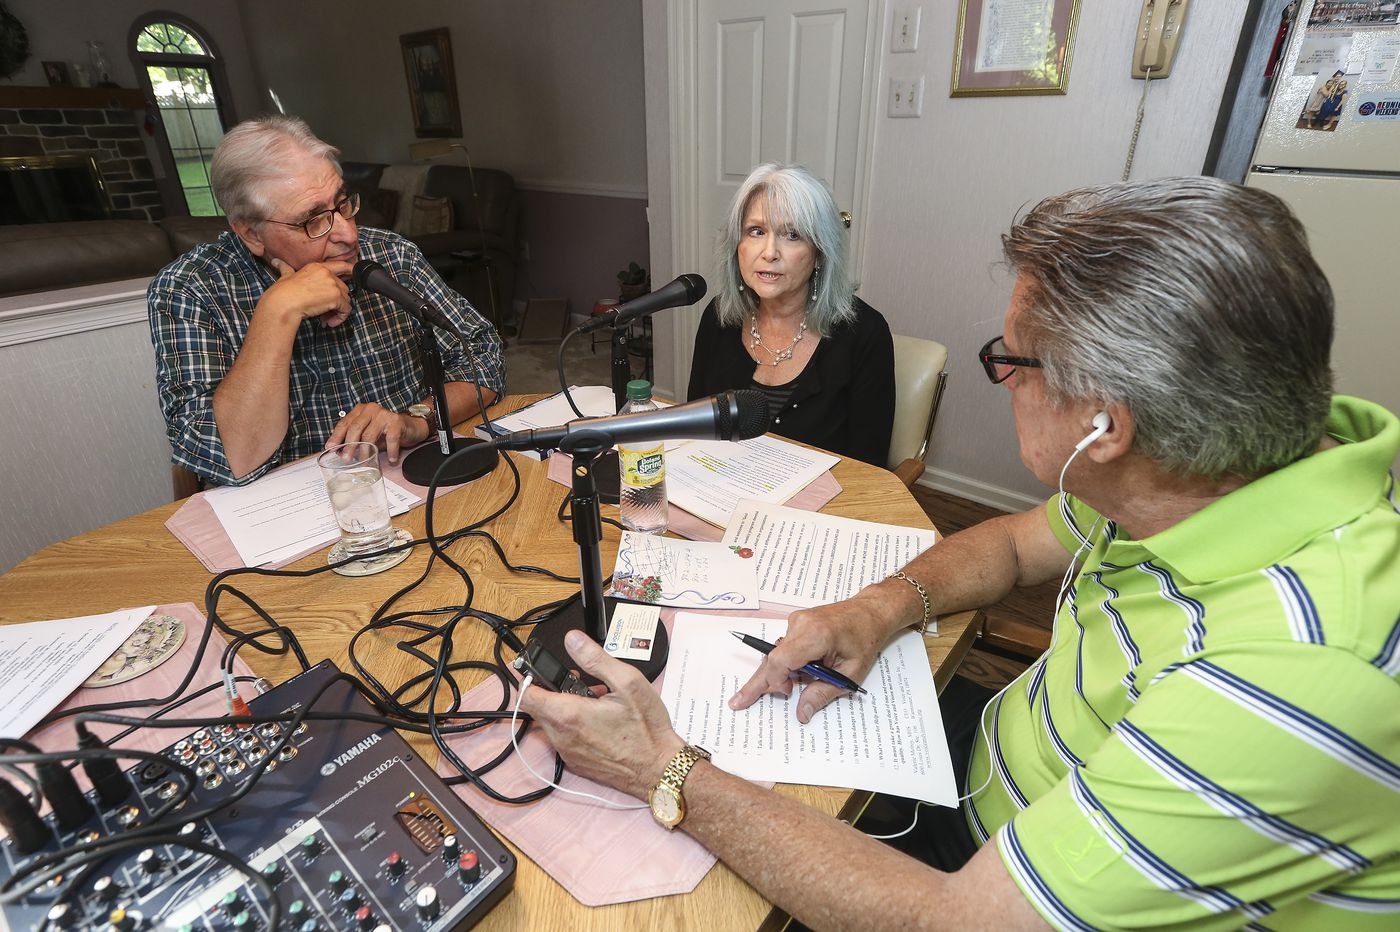 In Chester County, two longtime 'paesanos' are filling the airwaves with 'Good News'